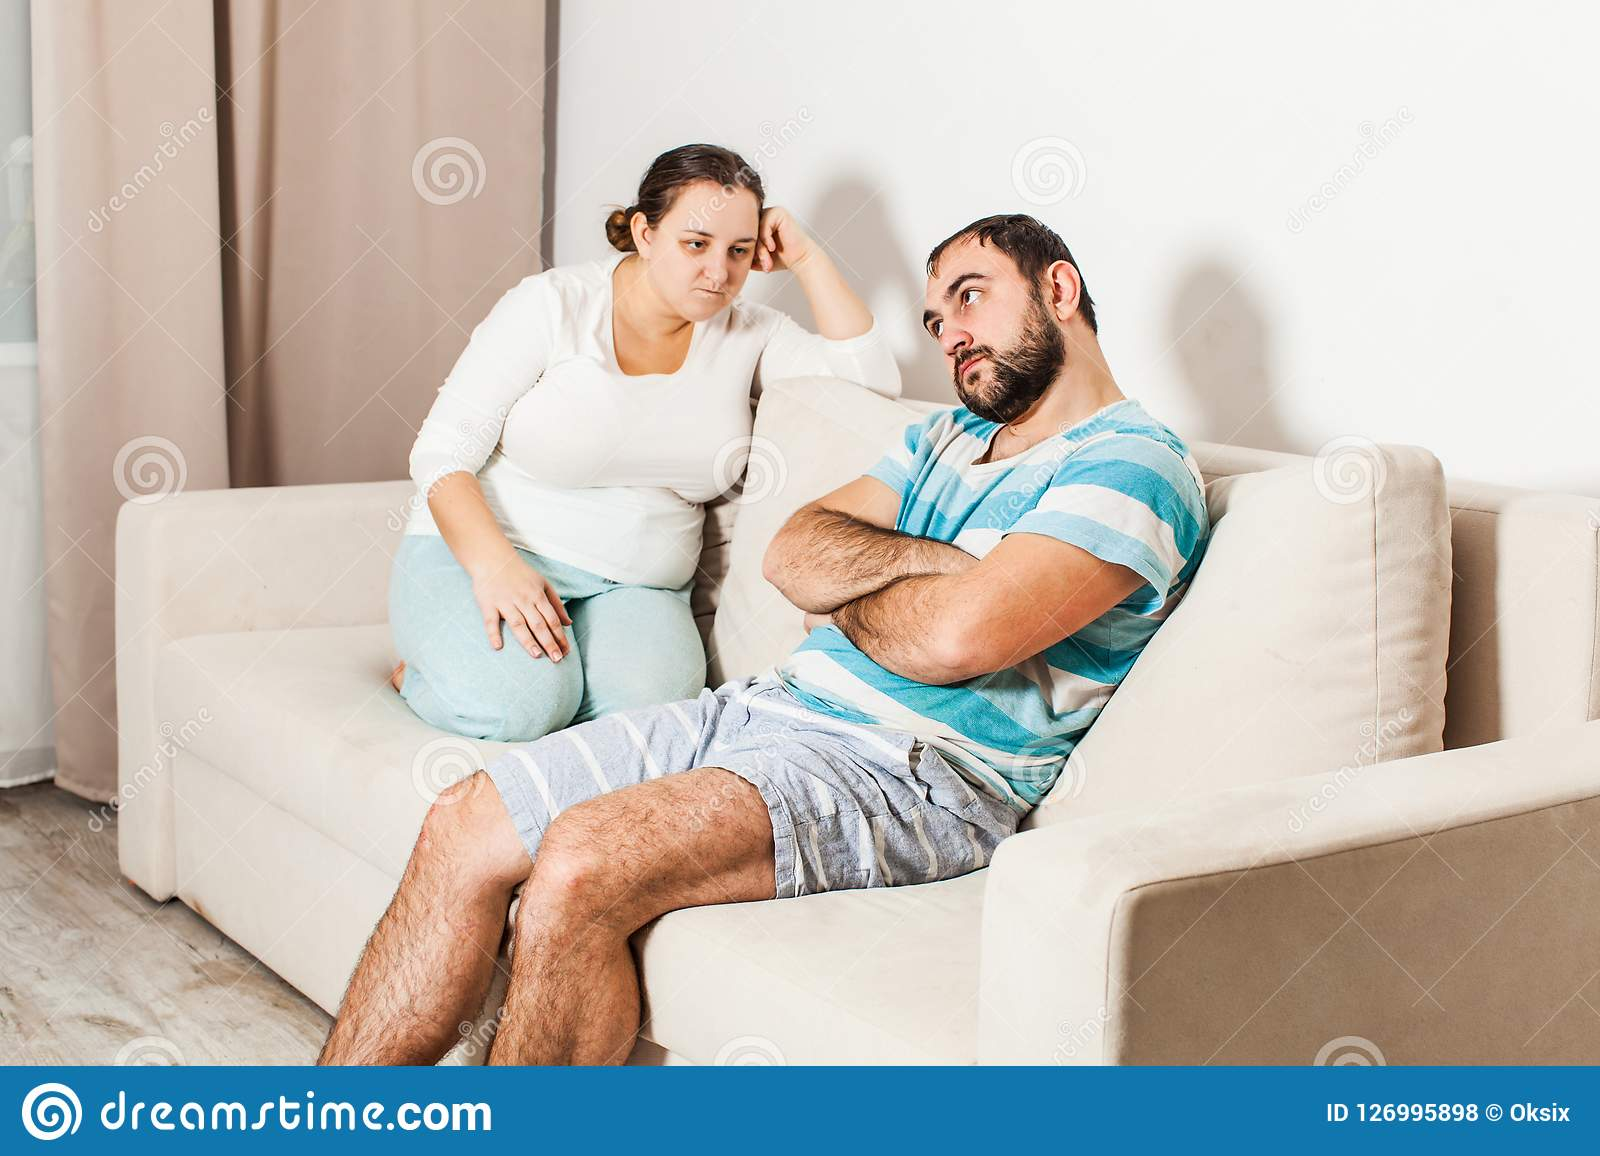 Couple sitting on couch at home in the living room.